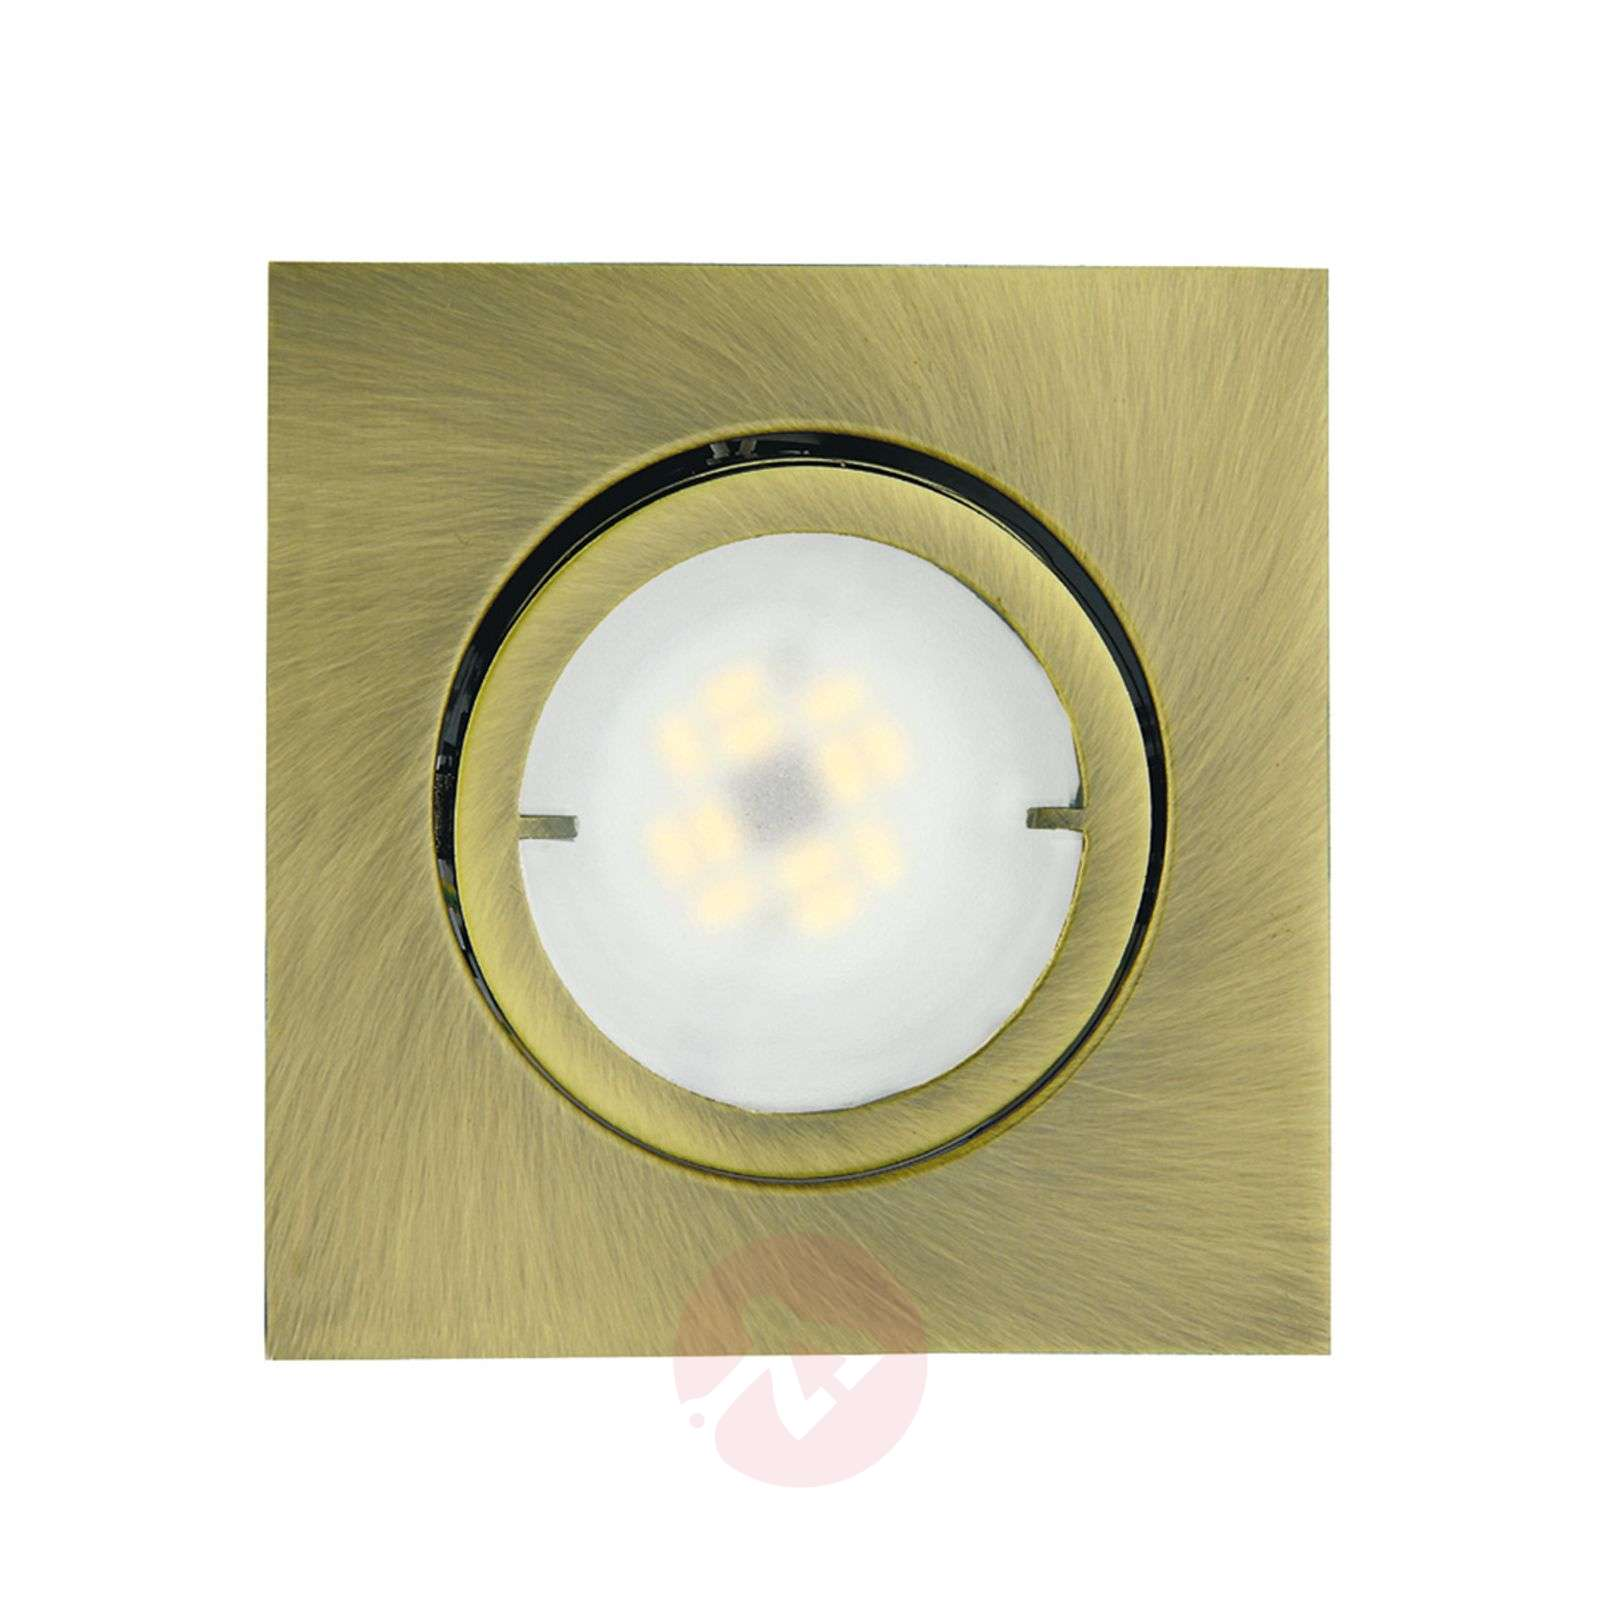 Lampe encastrable LED Joanie angulaire, laiton-1524116-01